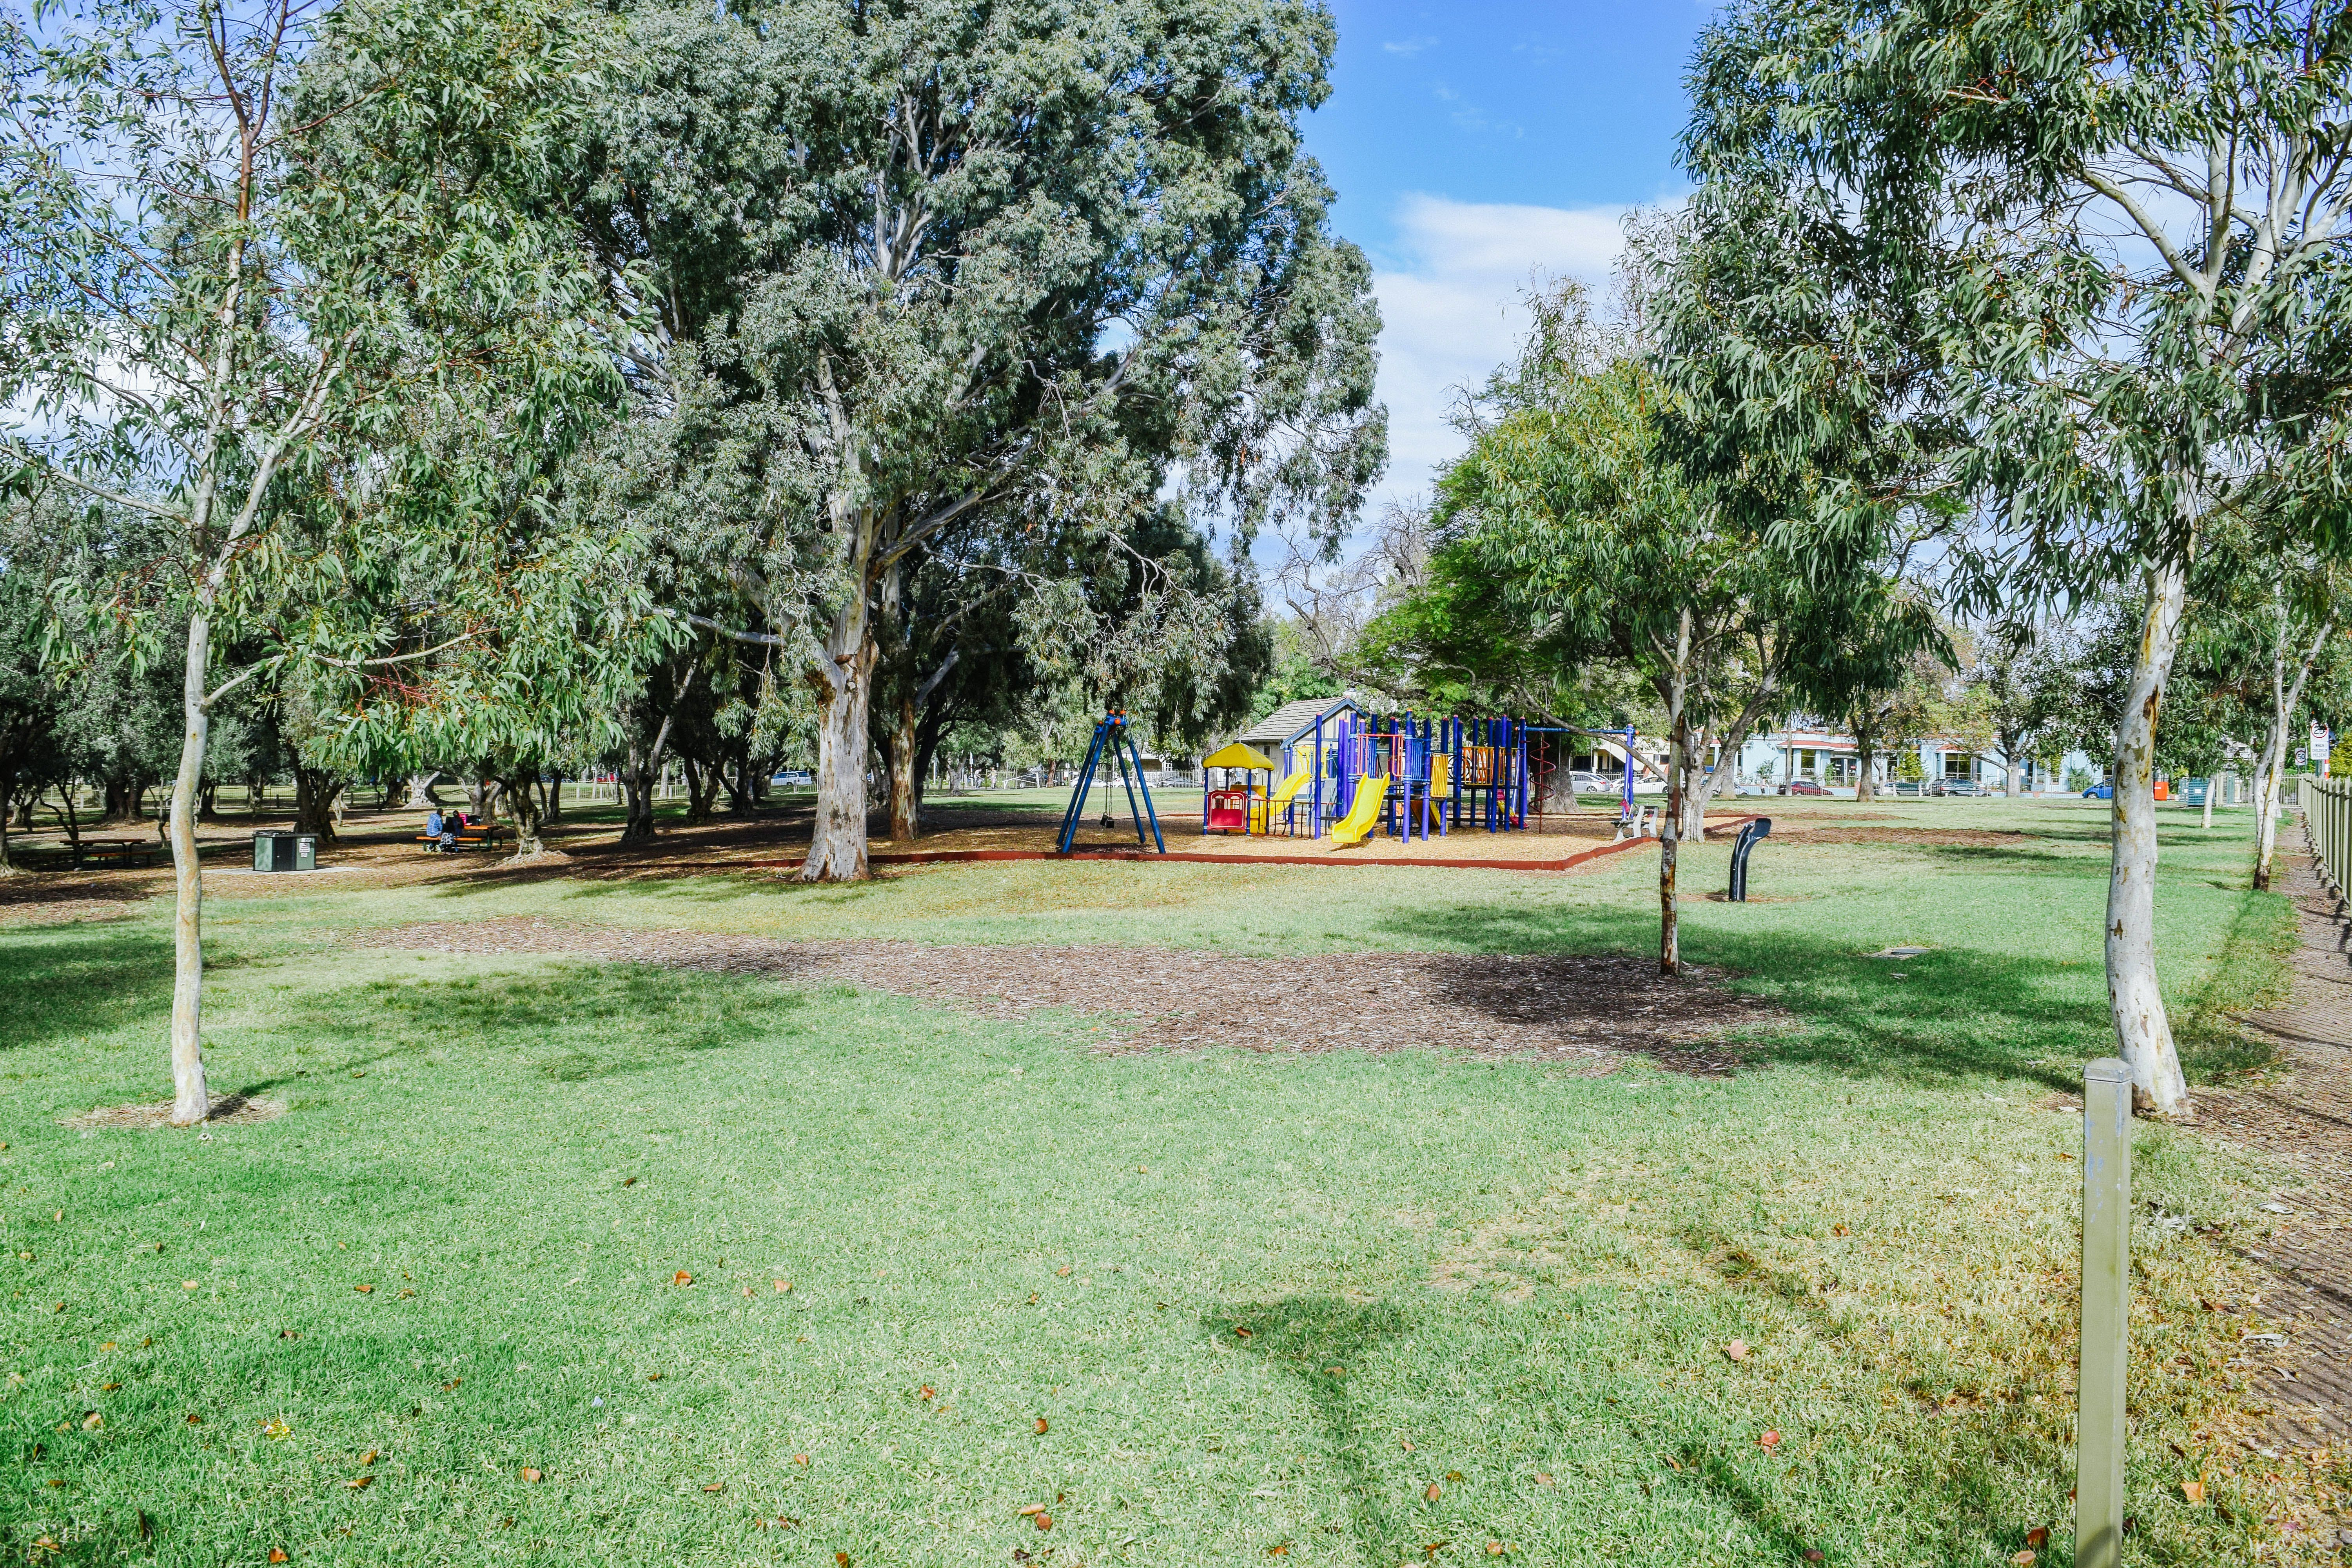 6. Existing Playground View From North West Corner